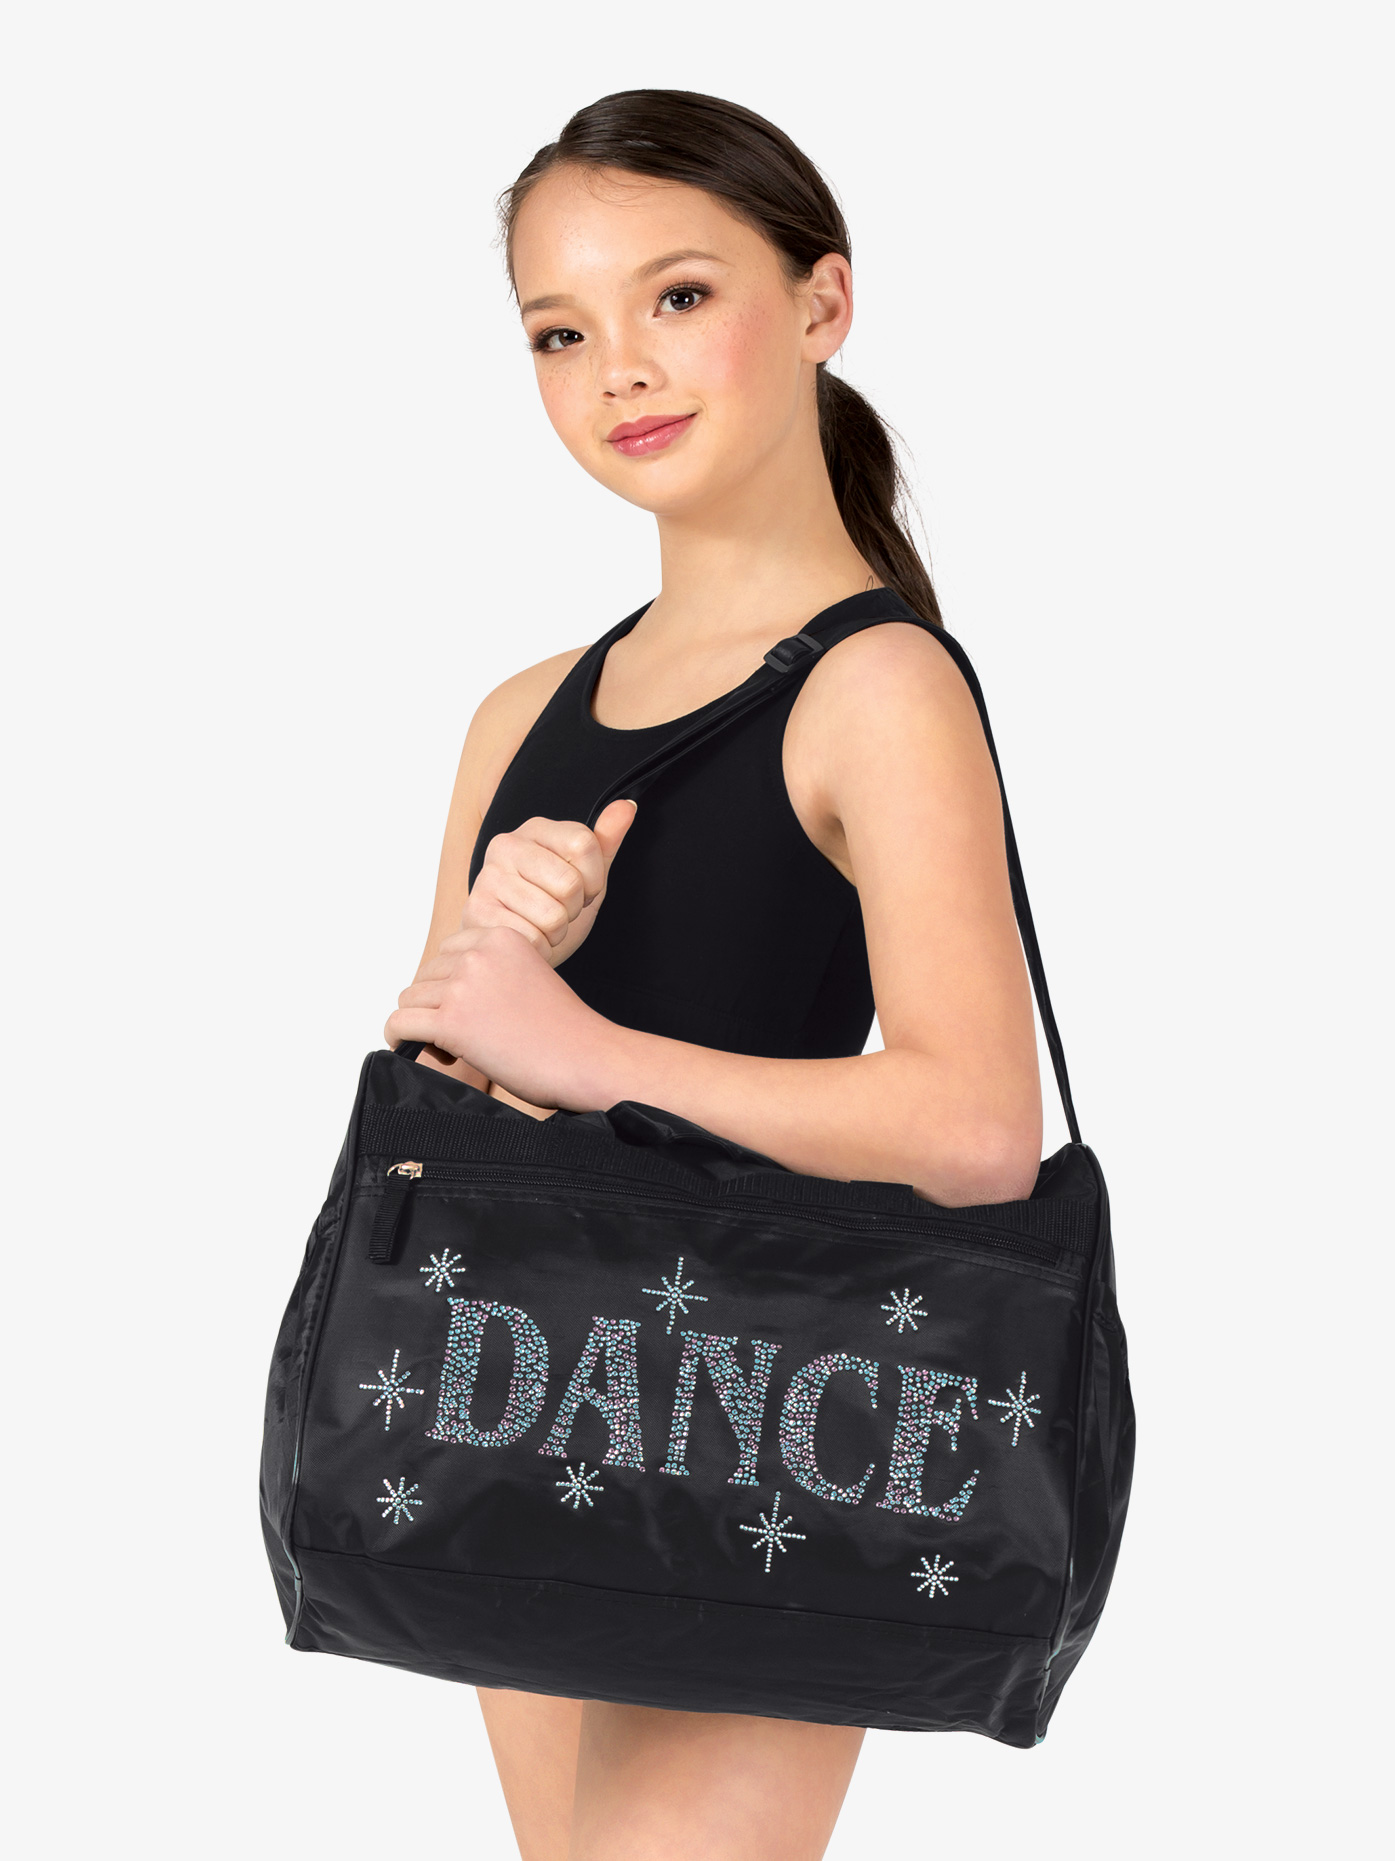 DansBagz Bling It Dance Tote Bag B446